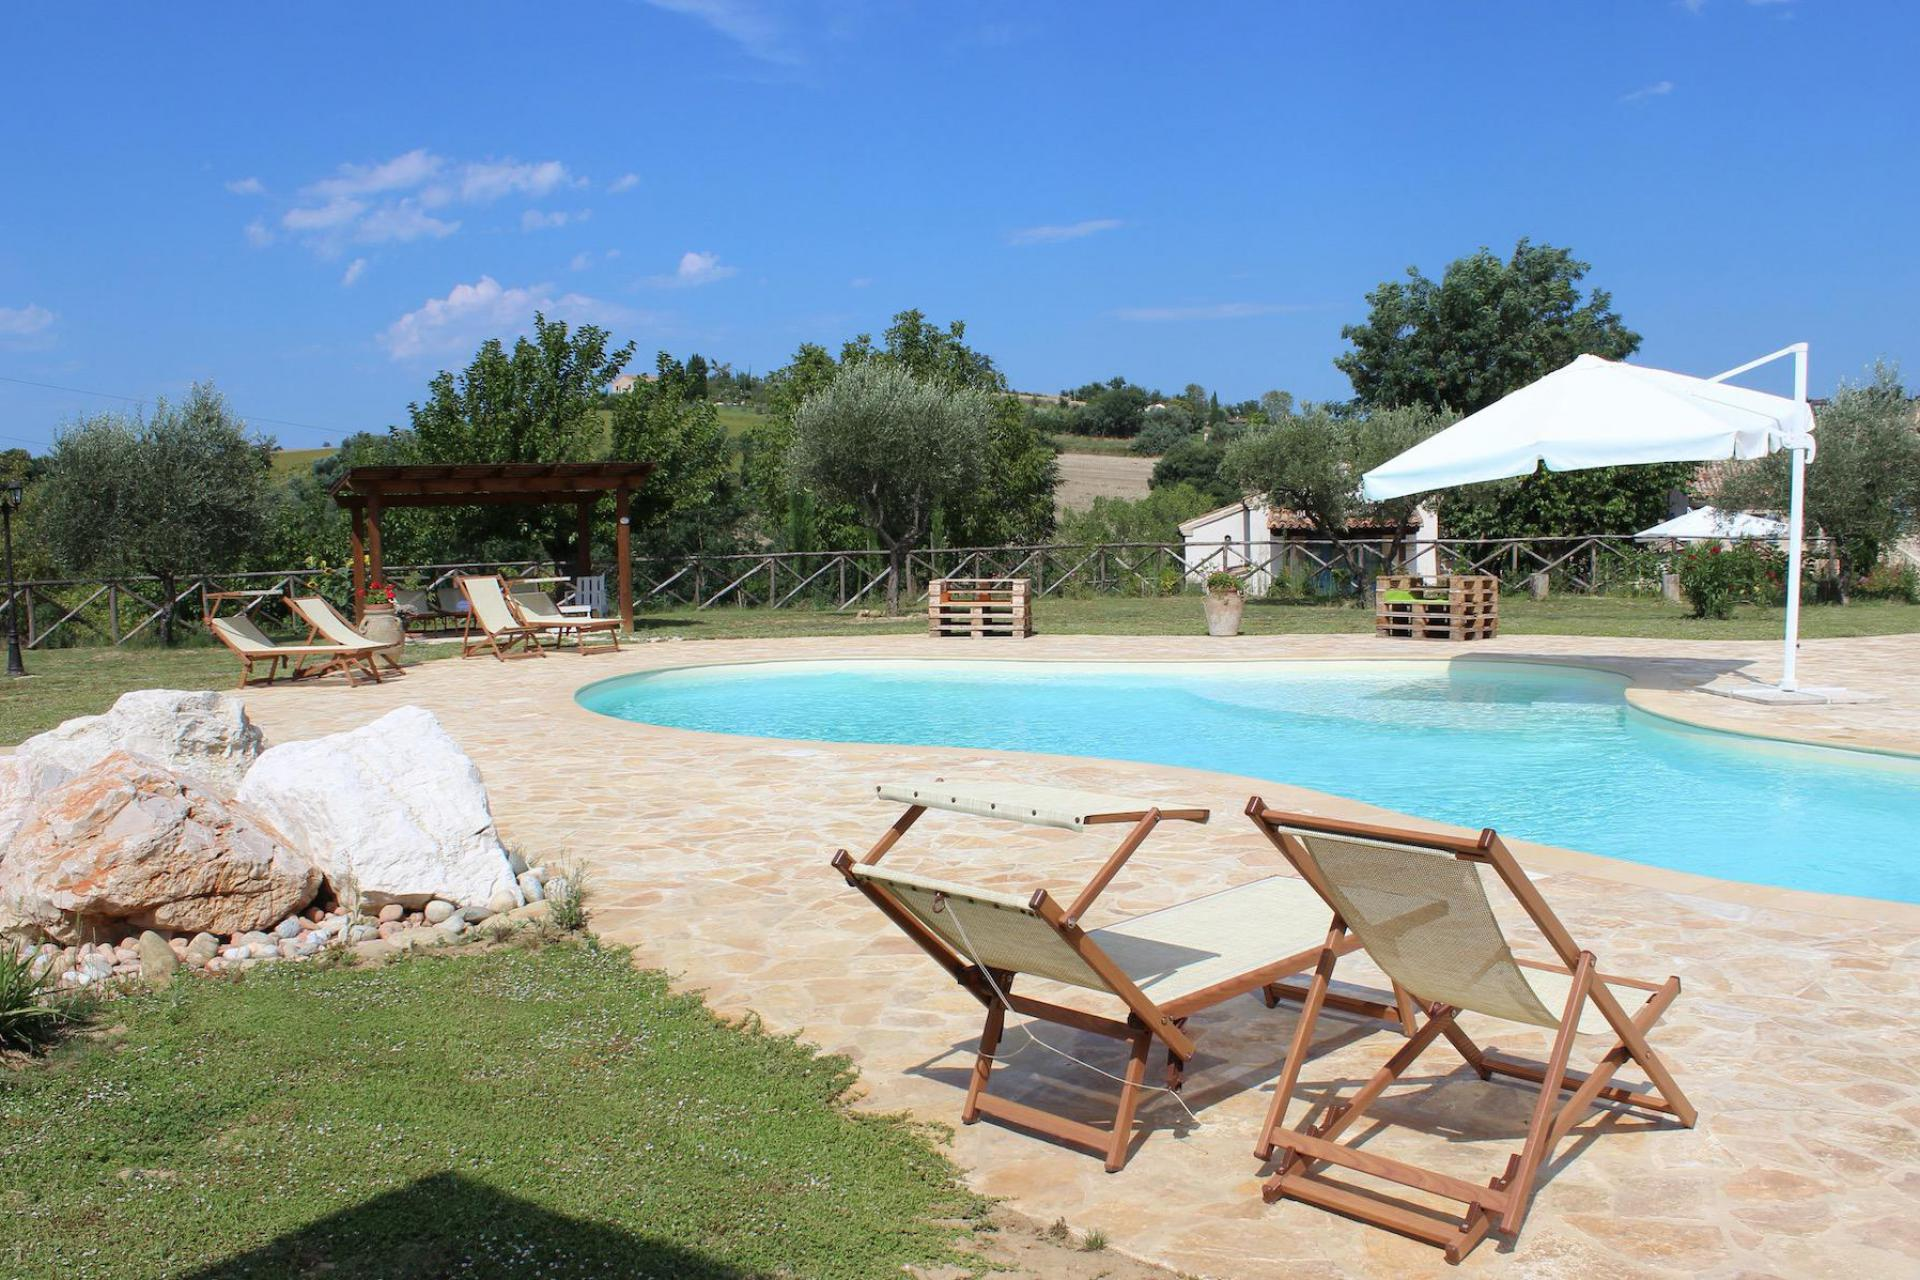 Agriturismo Marche Cosy agriturismo near authentic village in Marche